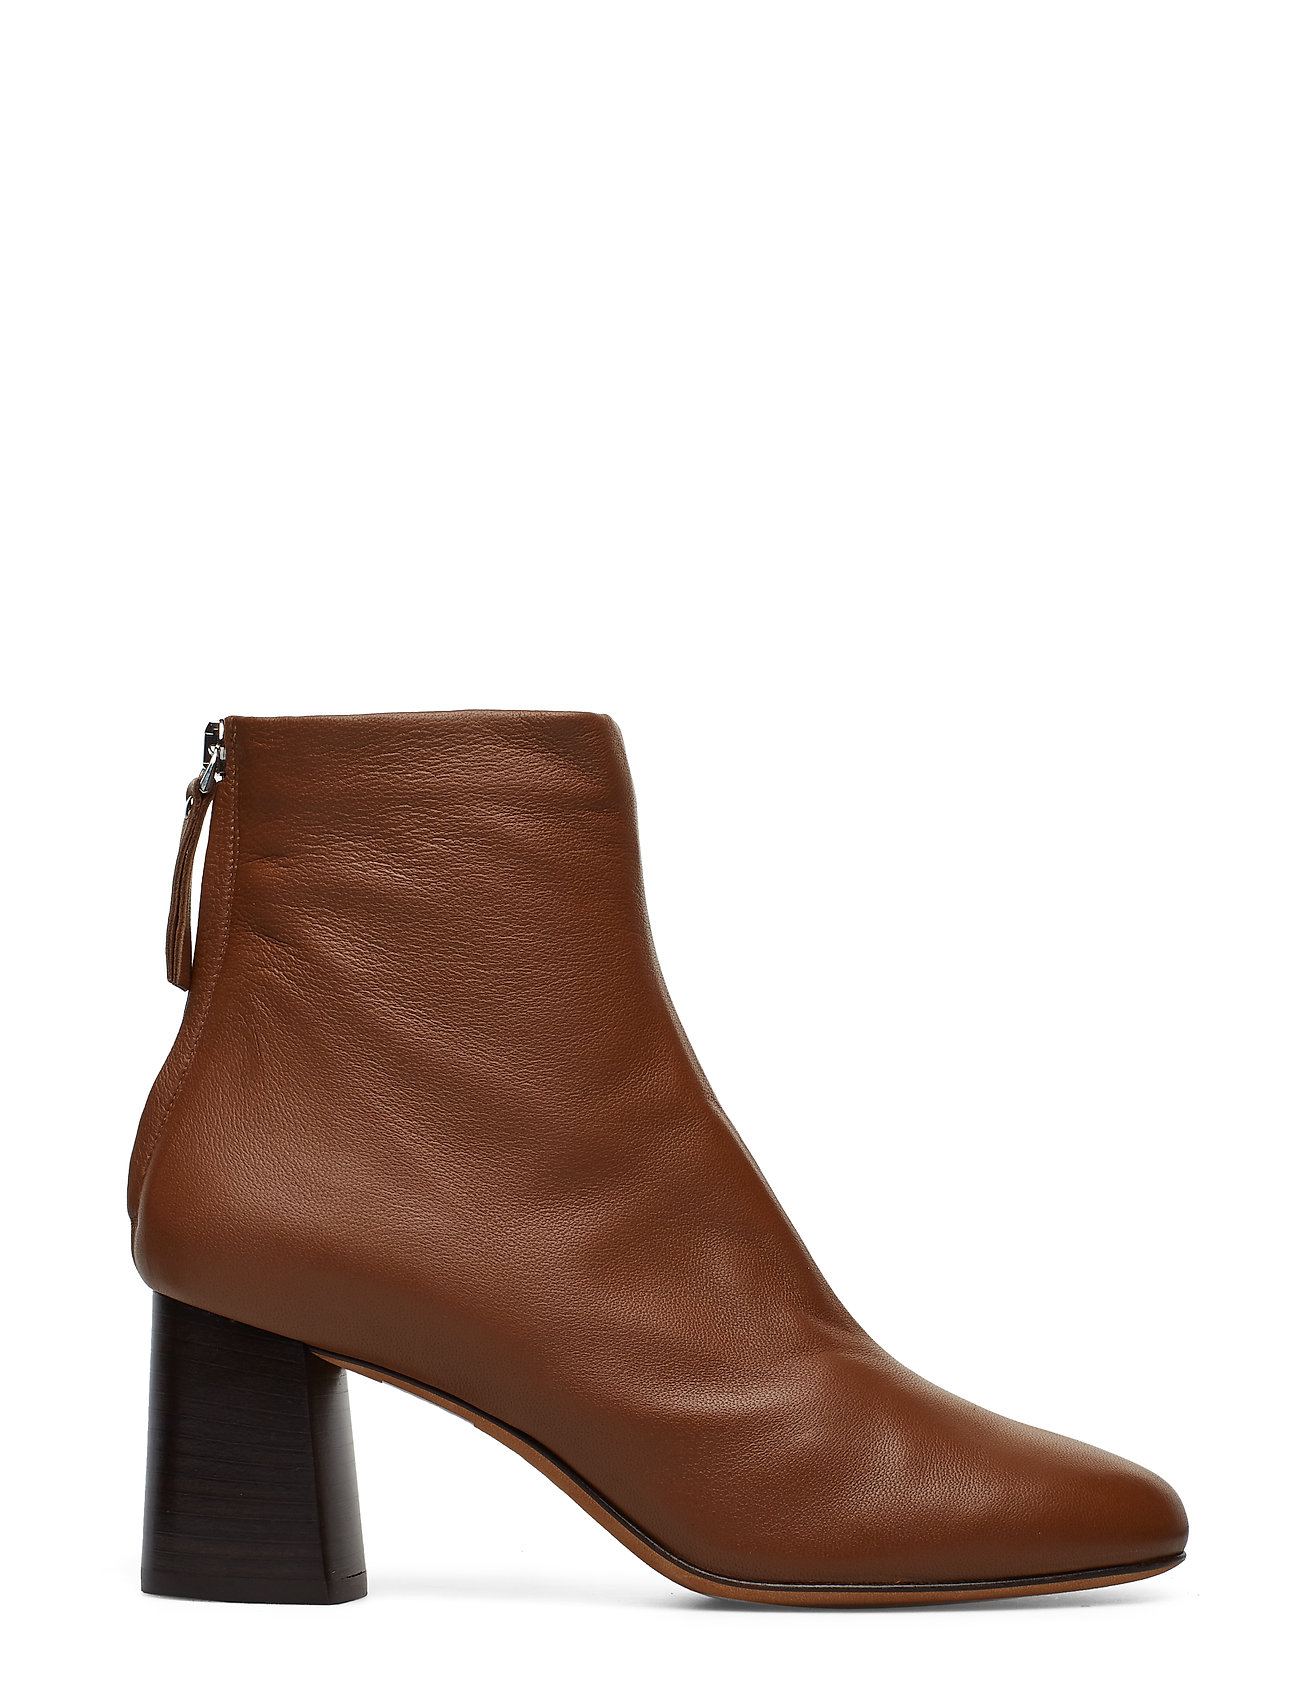 Nadia - Soft Heel Boot Shoes Boots Ankle Boots Ankle Boot - Heel Brun 3.1 Phillip Lim